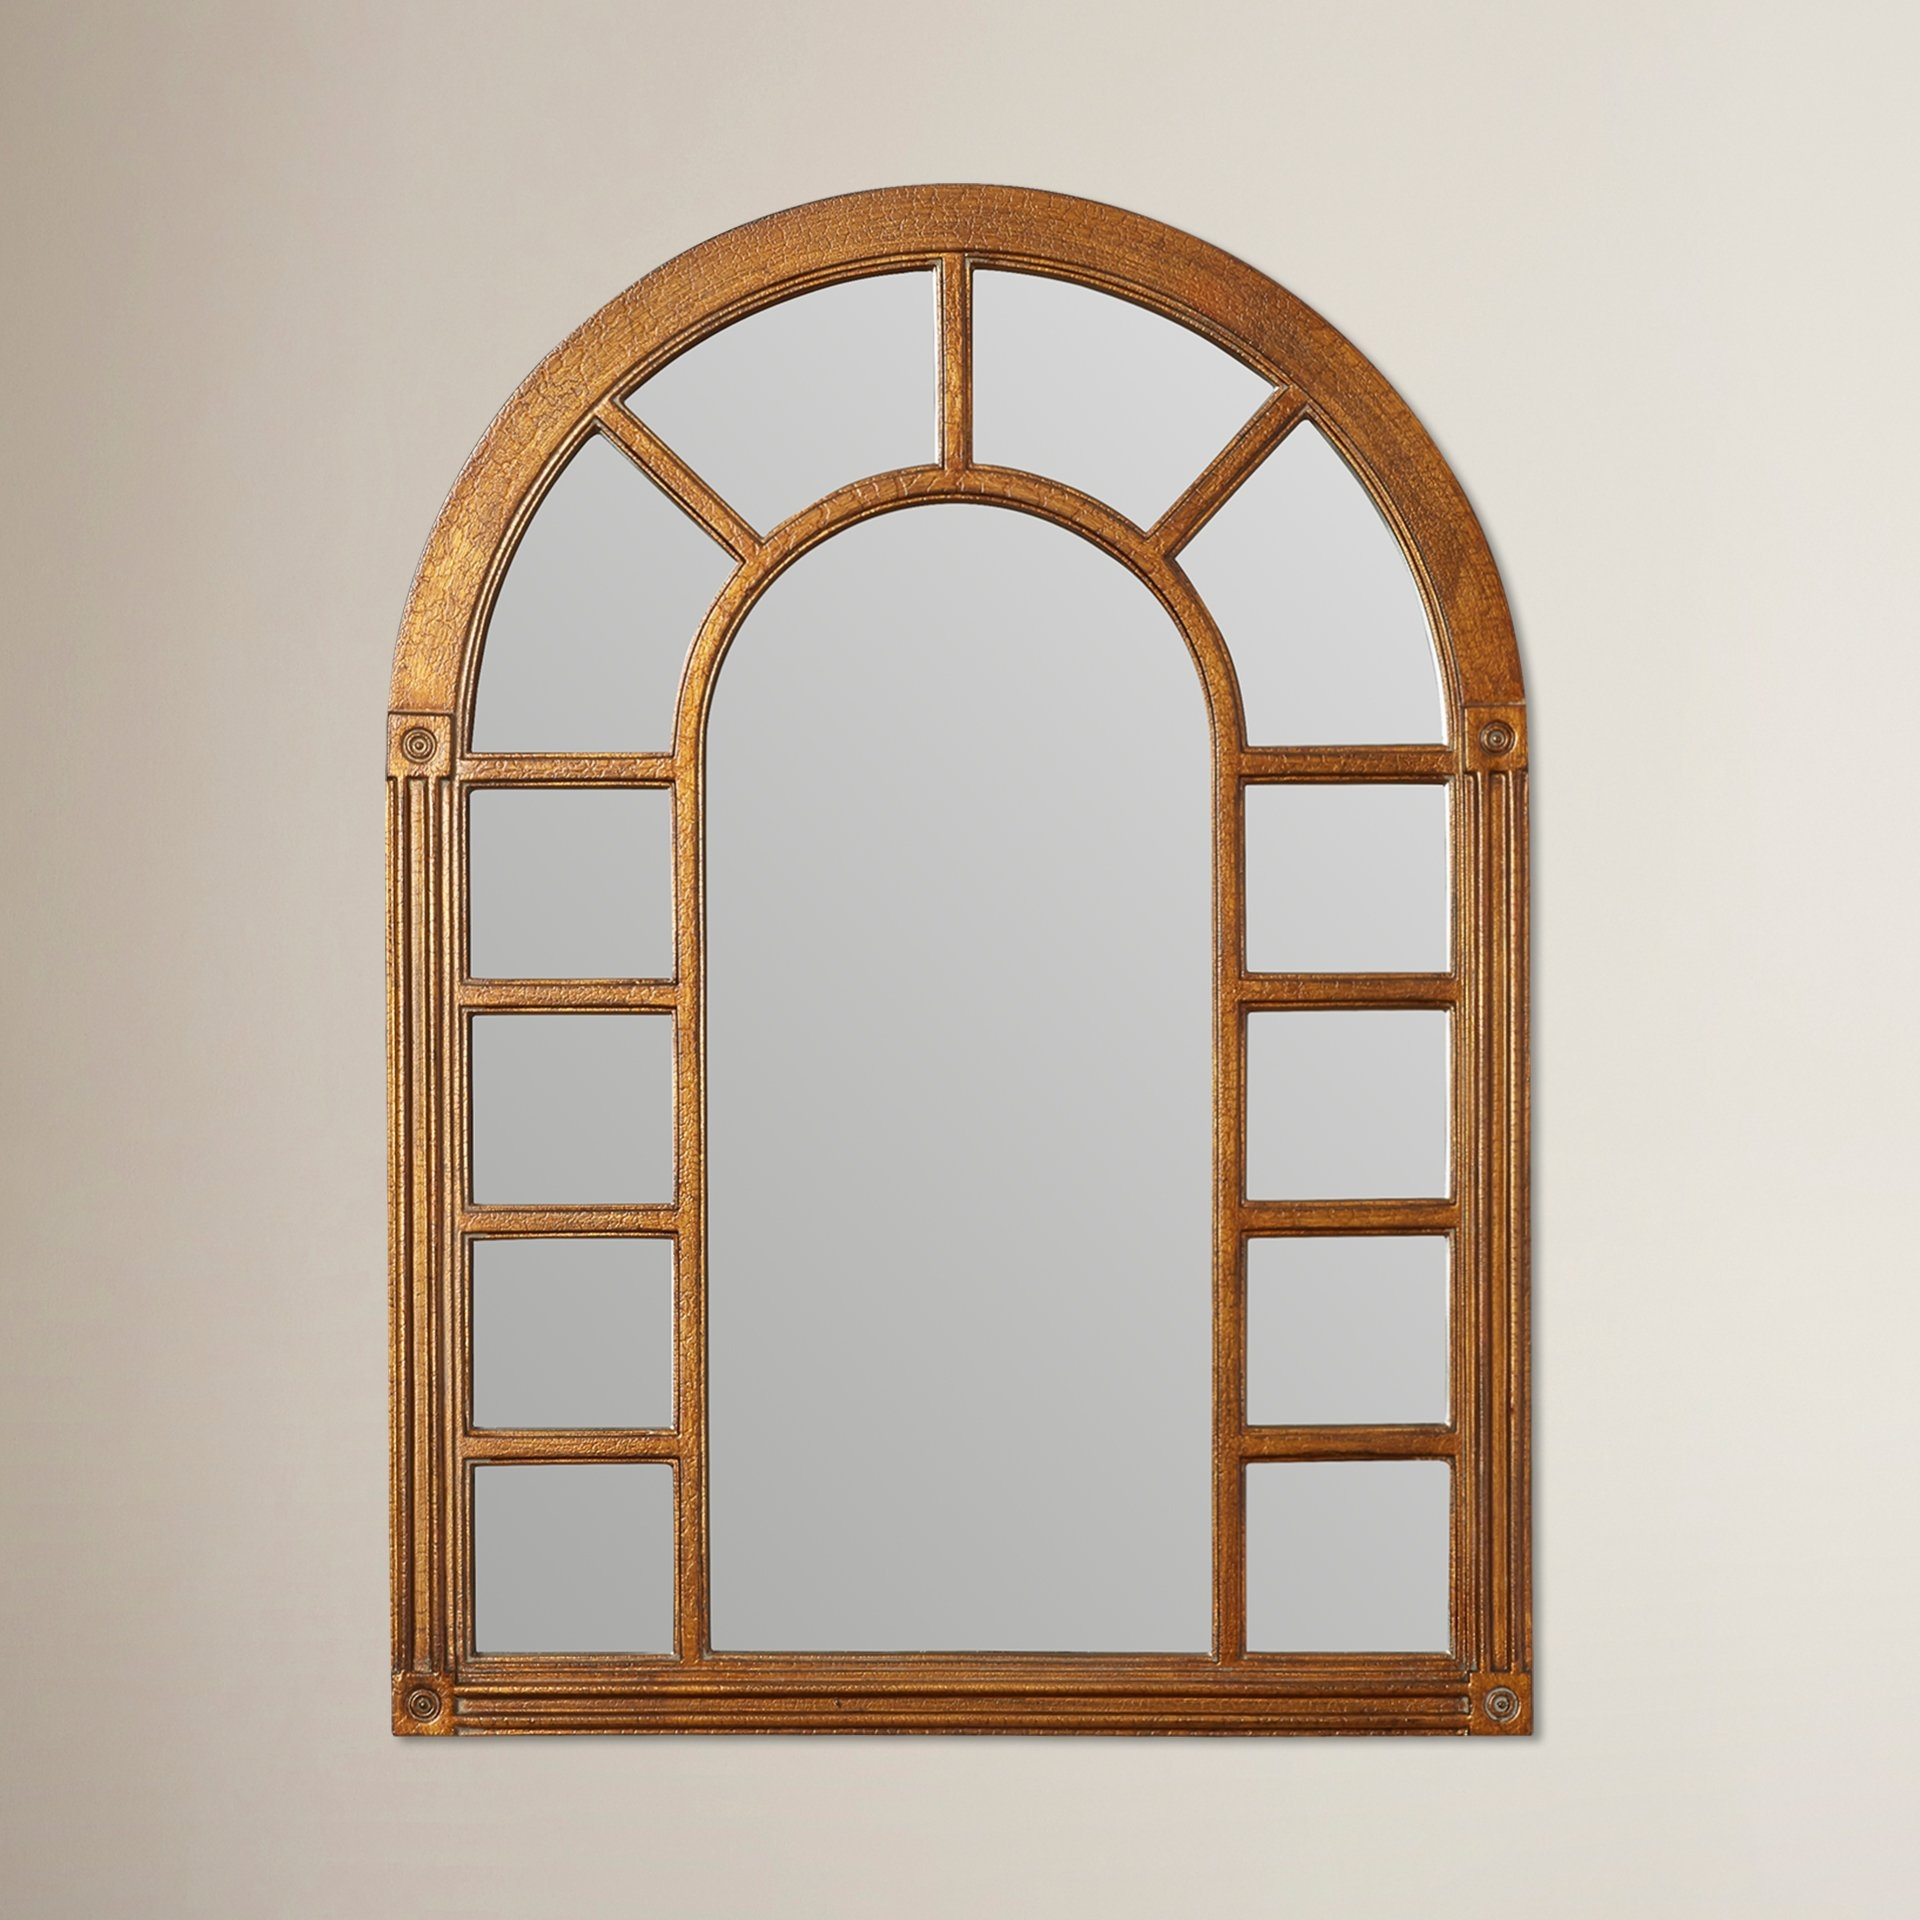 Cathedral Arched Oversized Wall Mirror Reviews Joss Main Inside Arched Wall Mirrors (View 14 of 15)